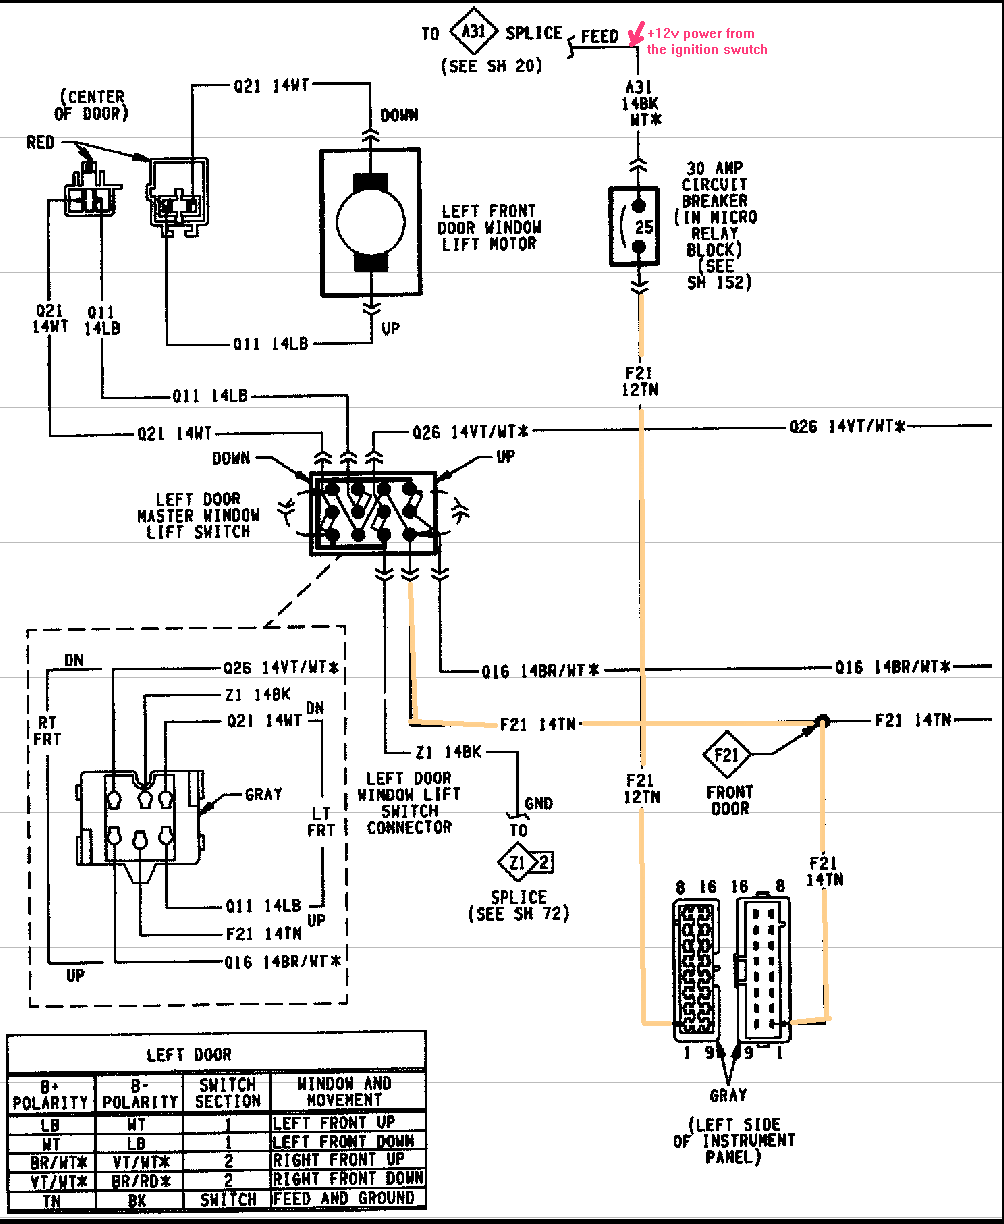 98 Plymouth Power Window Switch Wiring Diagram 1994 Grand For Switches Voyager Windows Will Not Operate